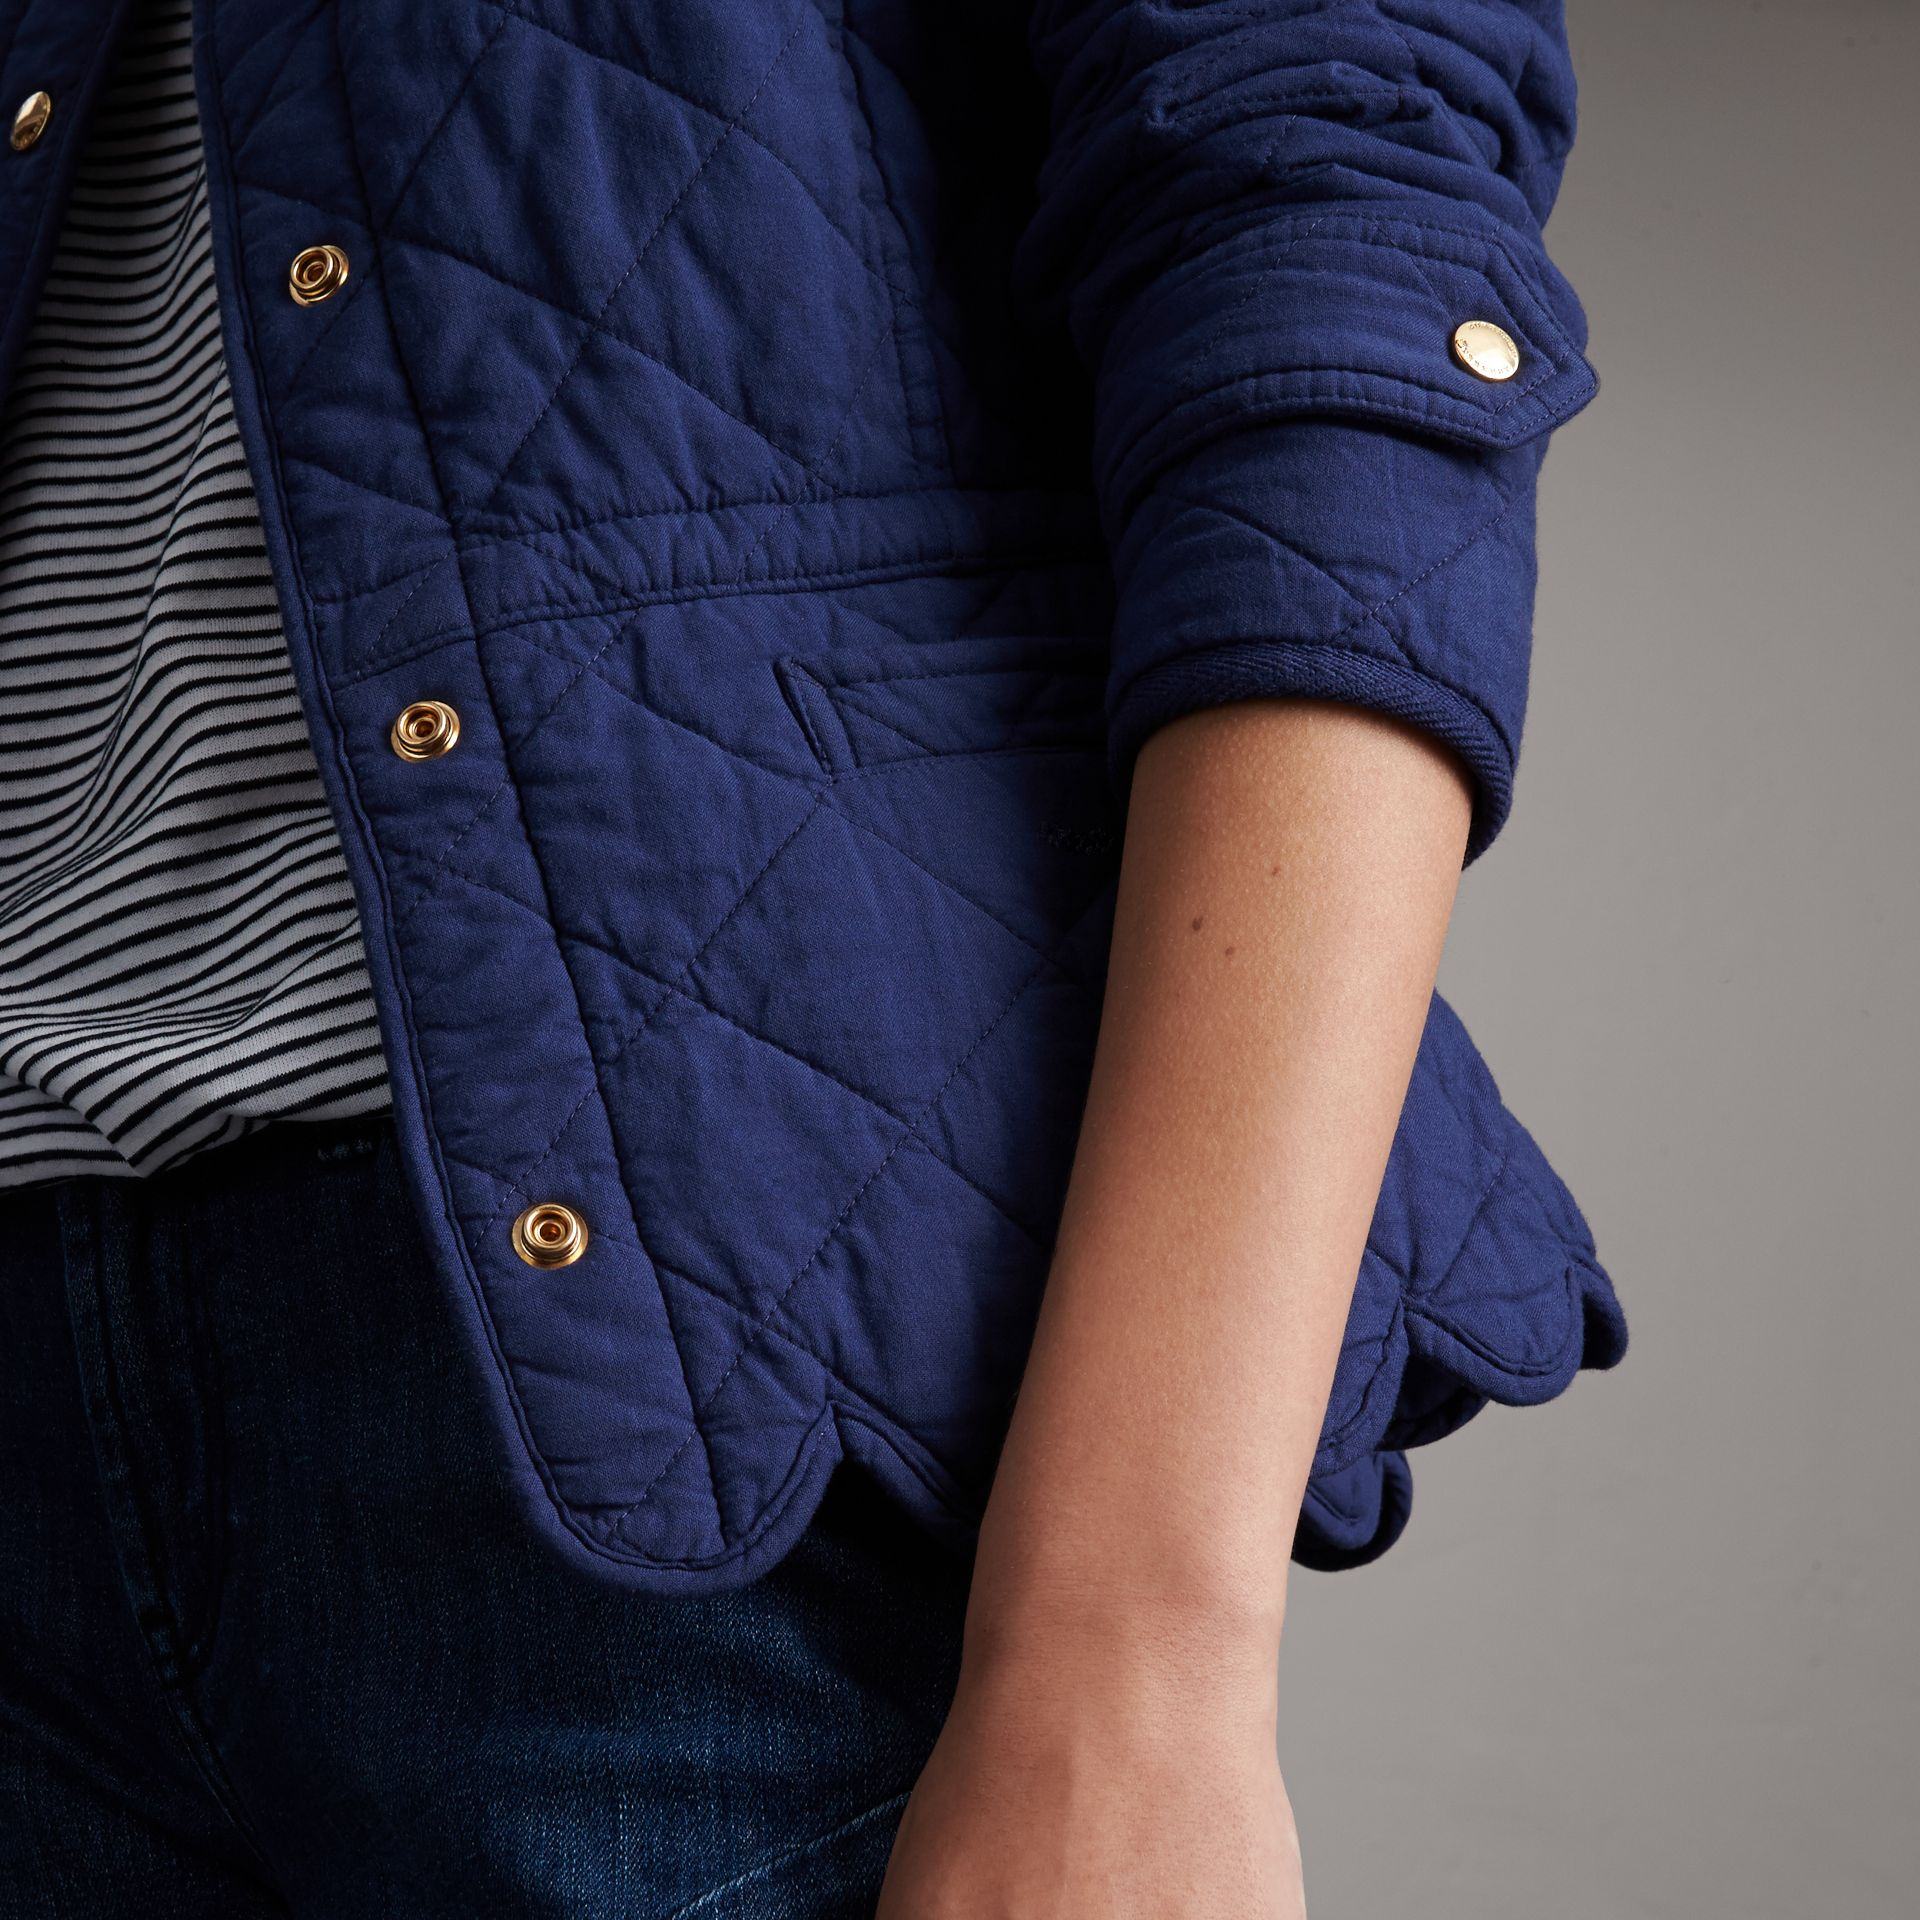 Scalloped Diamond Quilted Cotton Jacket in Indigo - Women | Burberry Australia - gallery image 2